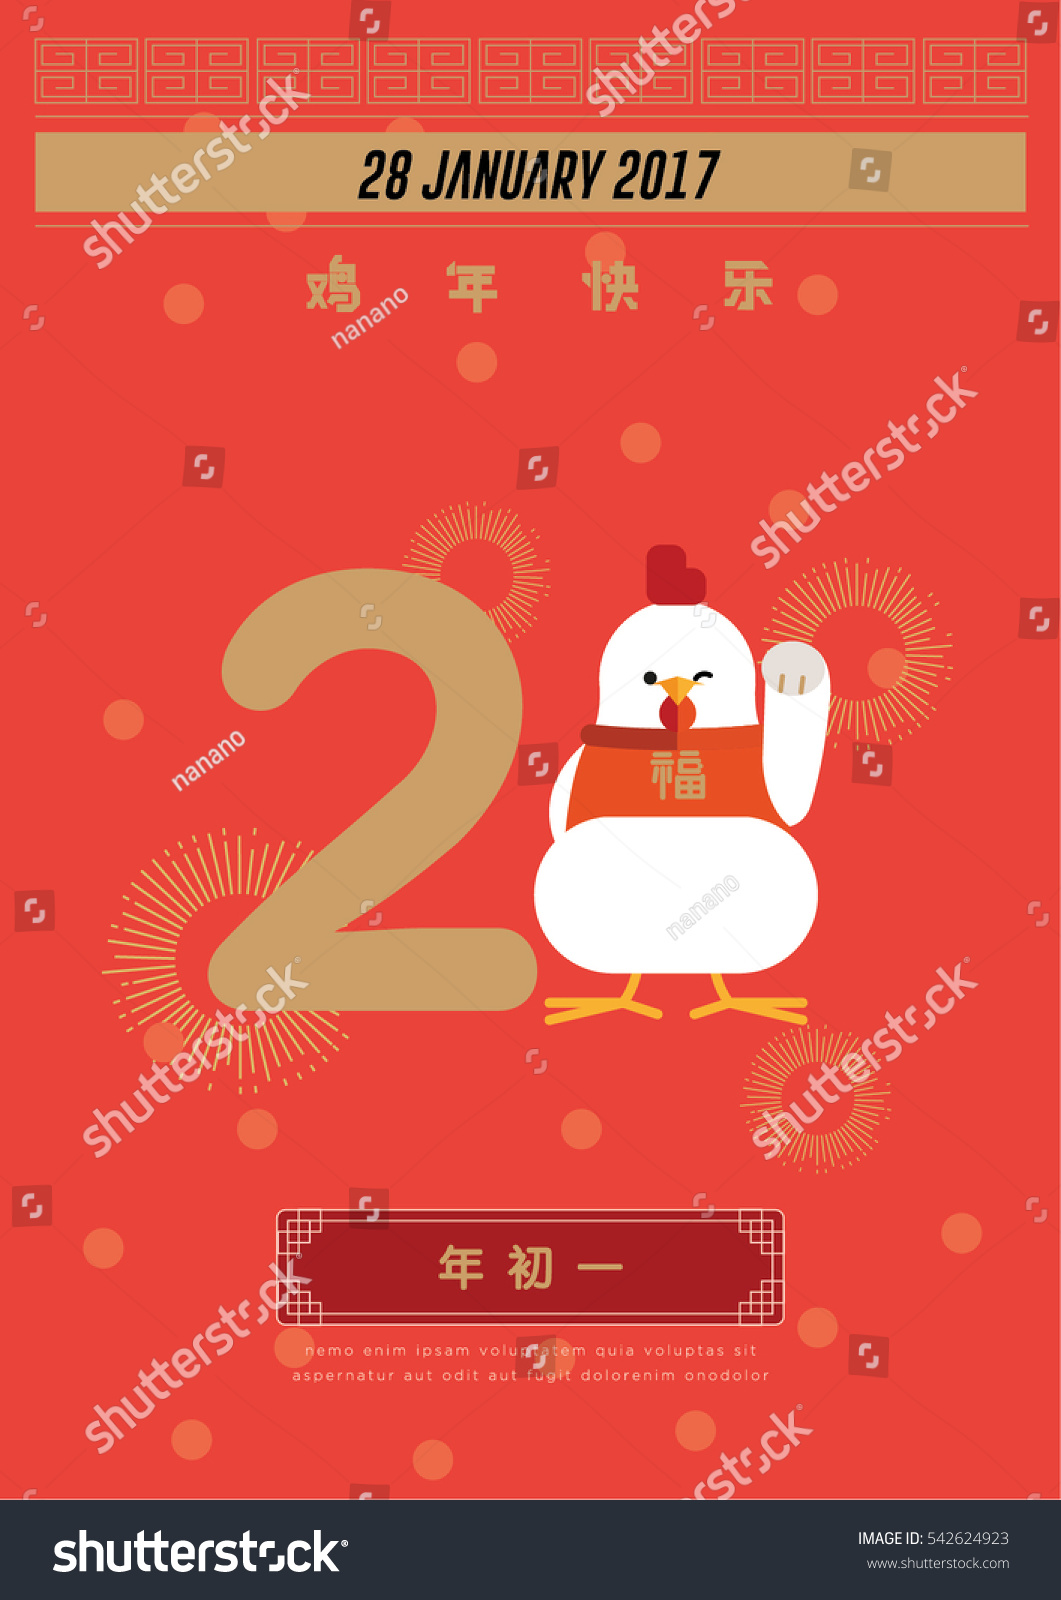 28 january 2017 chinese calendar year of rooster 2017 first day of chinese